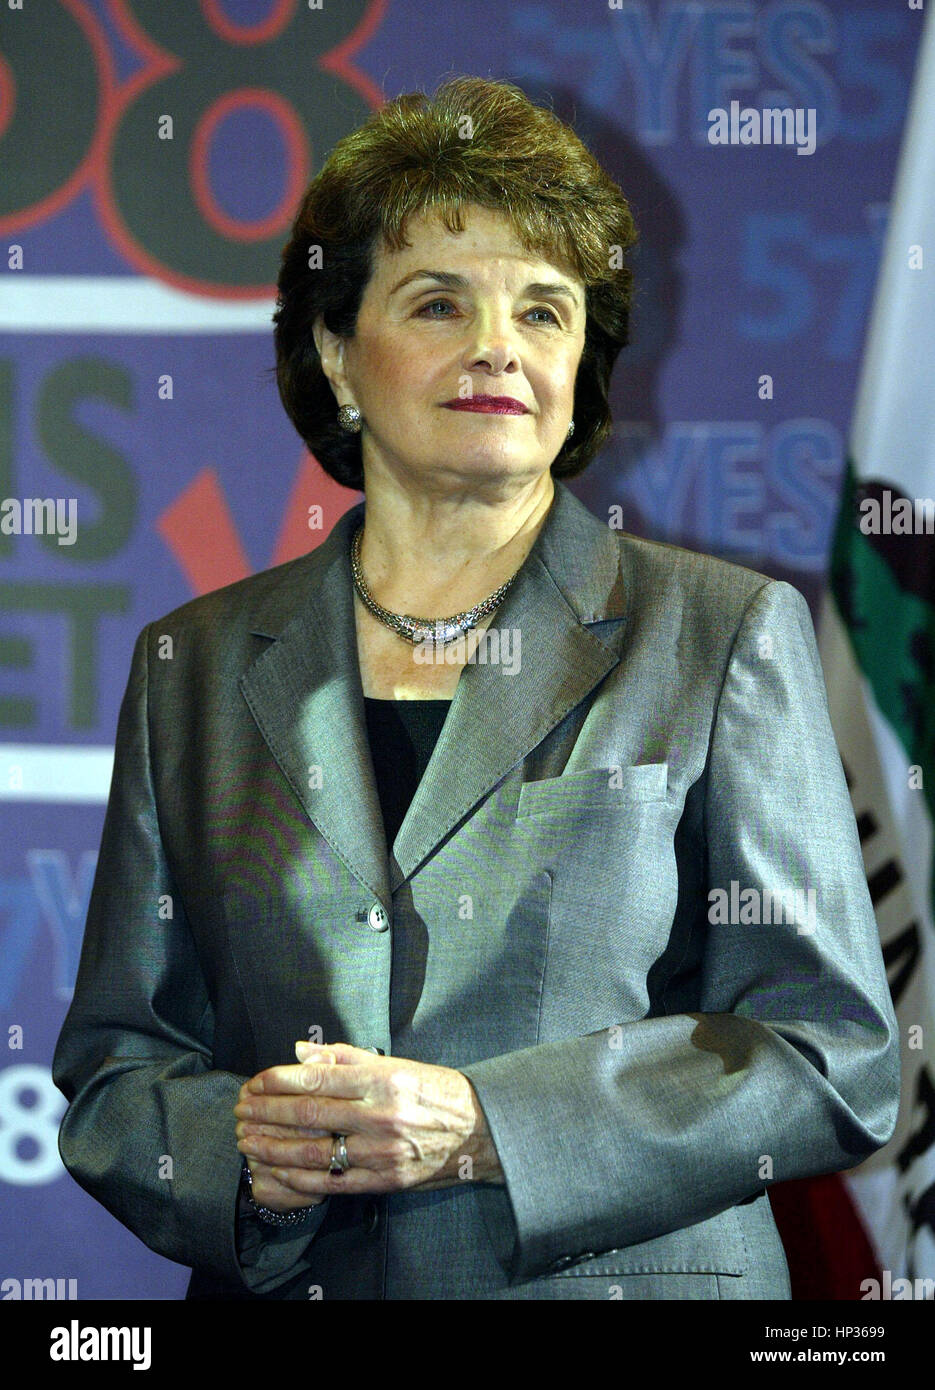 US Sen. Dianne Feinstein  at a press conference to endorse California Proposition 57 and 58 at the Fairmont Miramar - Stock Image